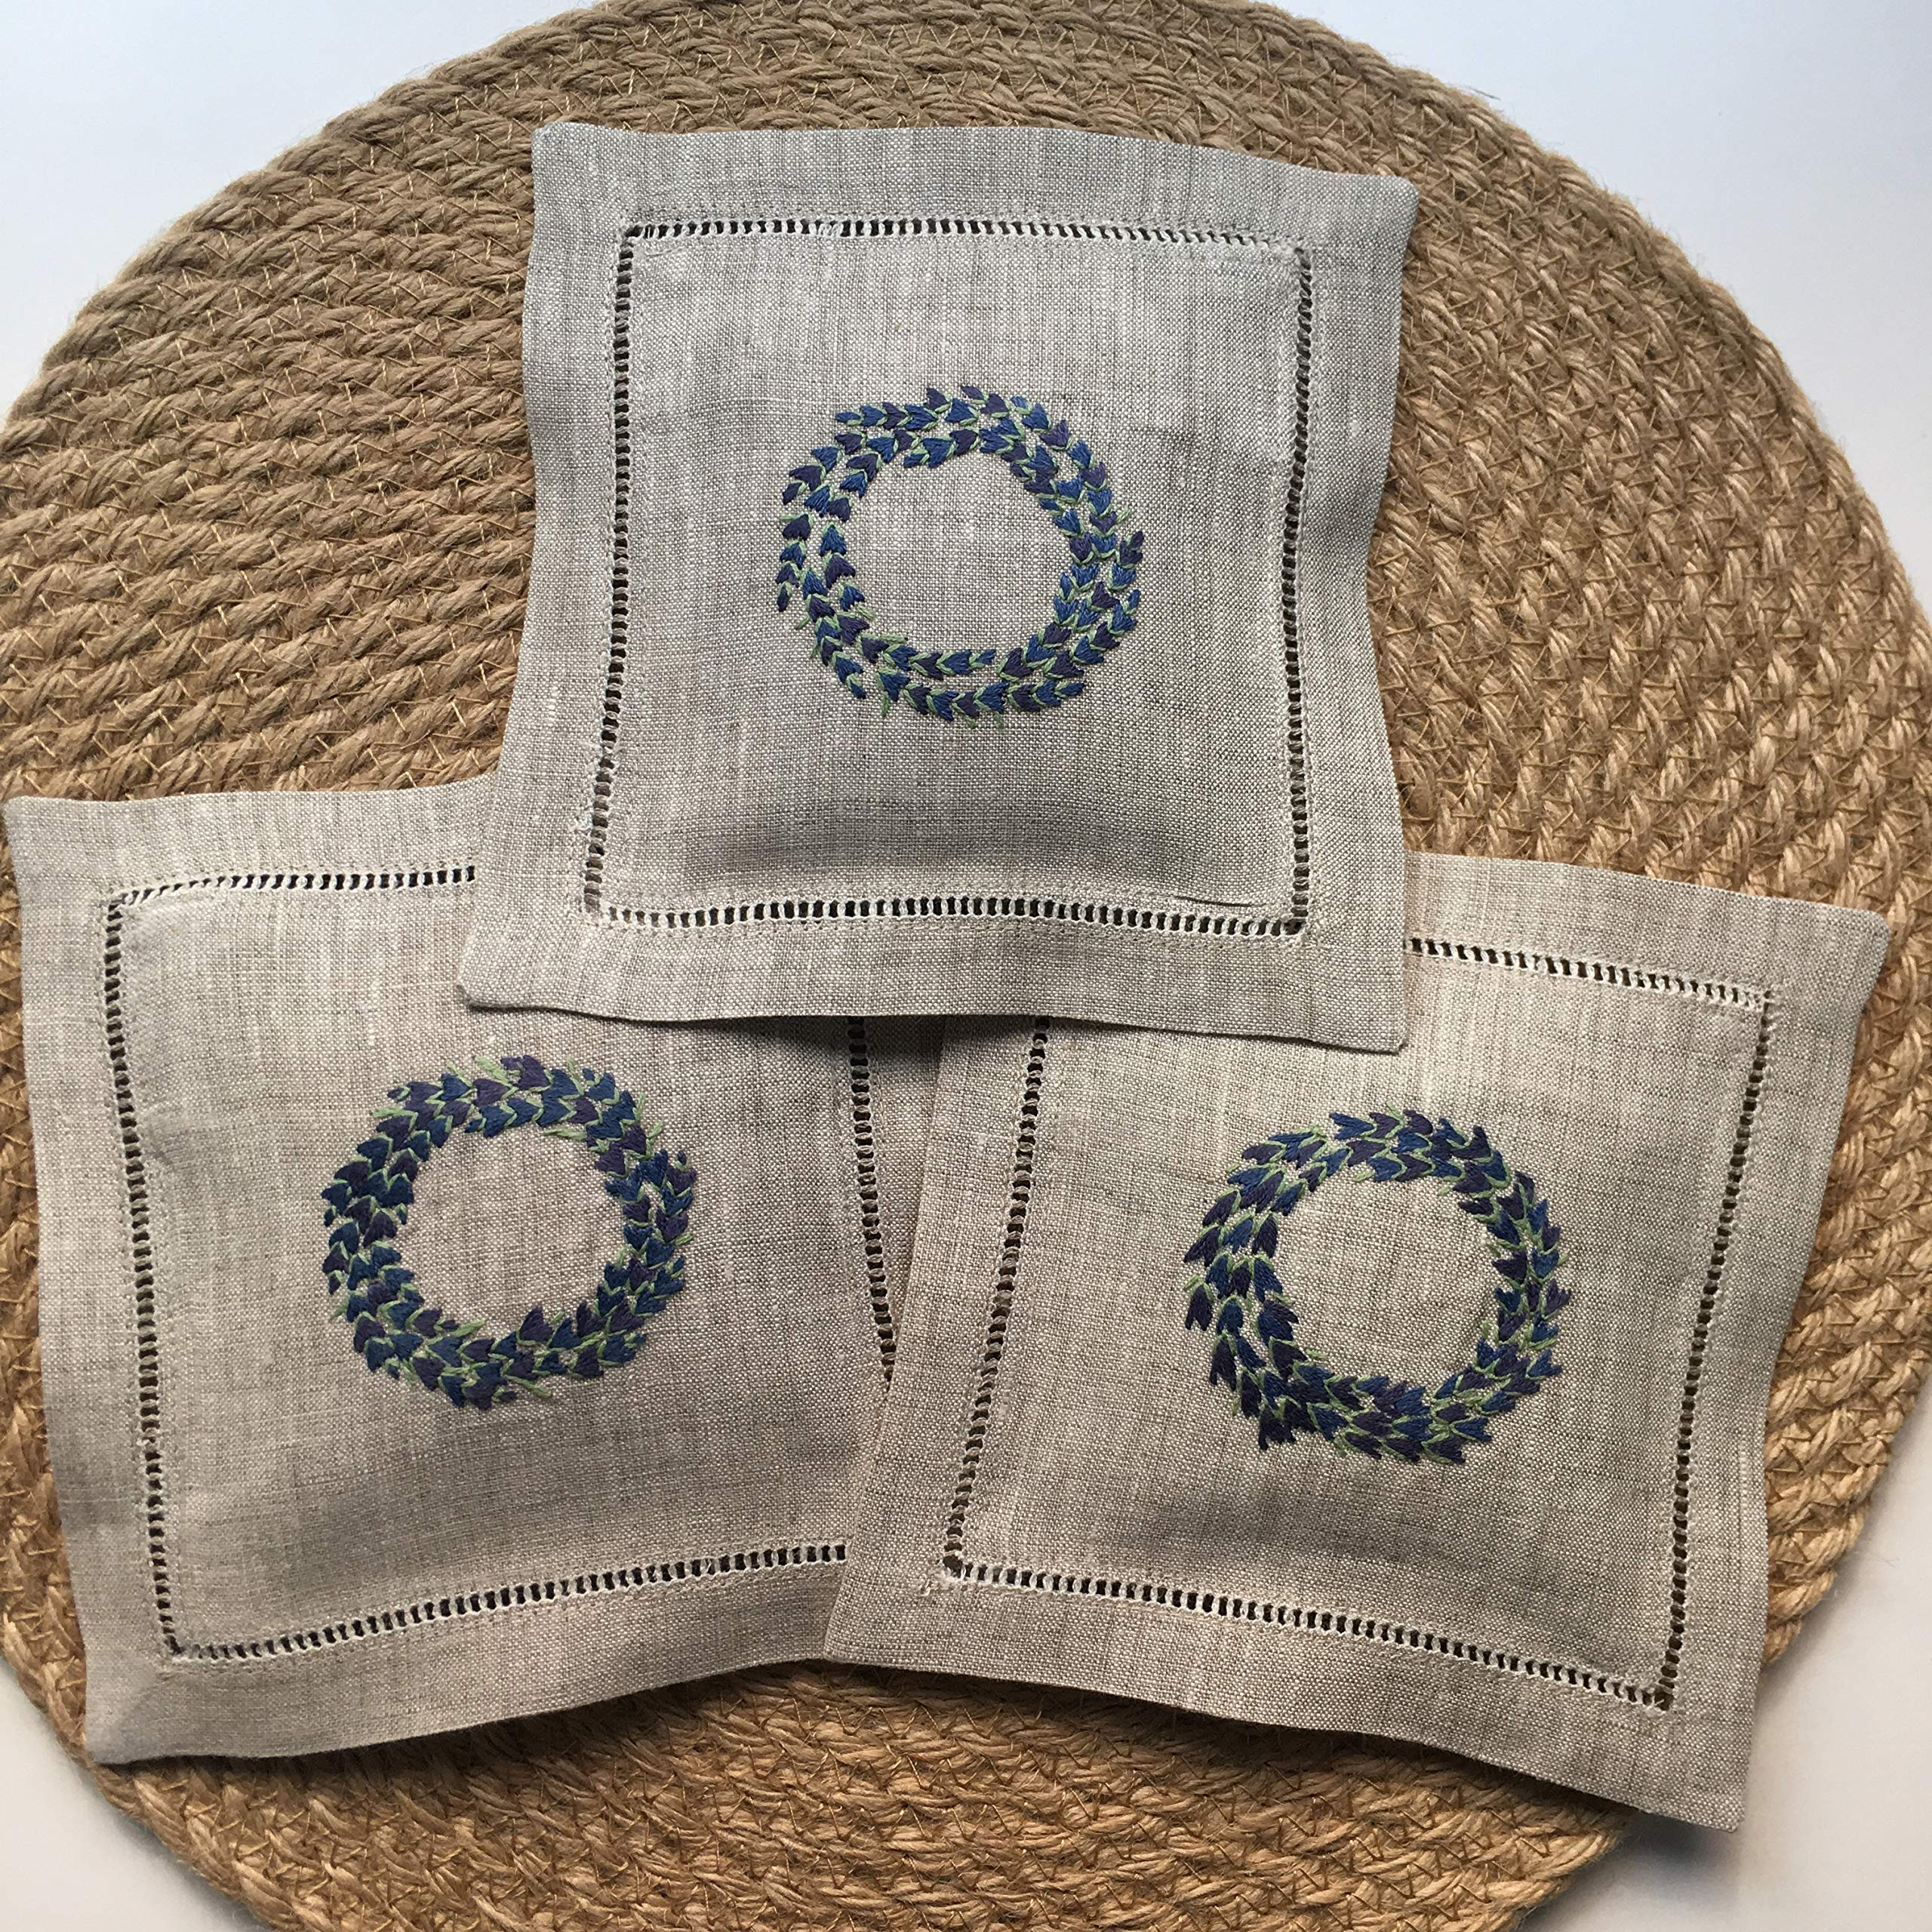 Hand Embroidered Lavender Pillow Sachet Bag ''Lavender Crown'' Natural Linen Cushion 6''x6'', Set of 3 by Minhcraft (Image #3)